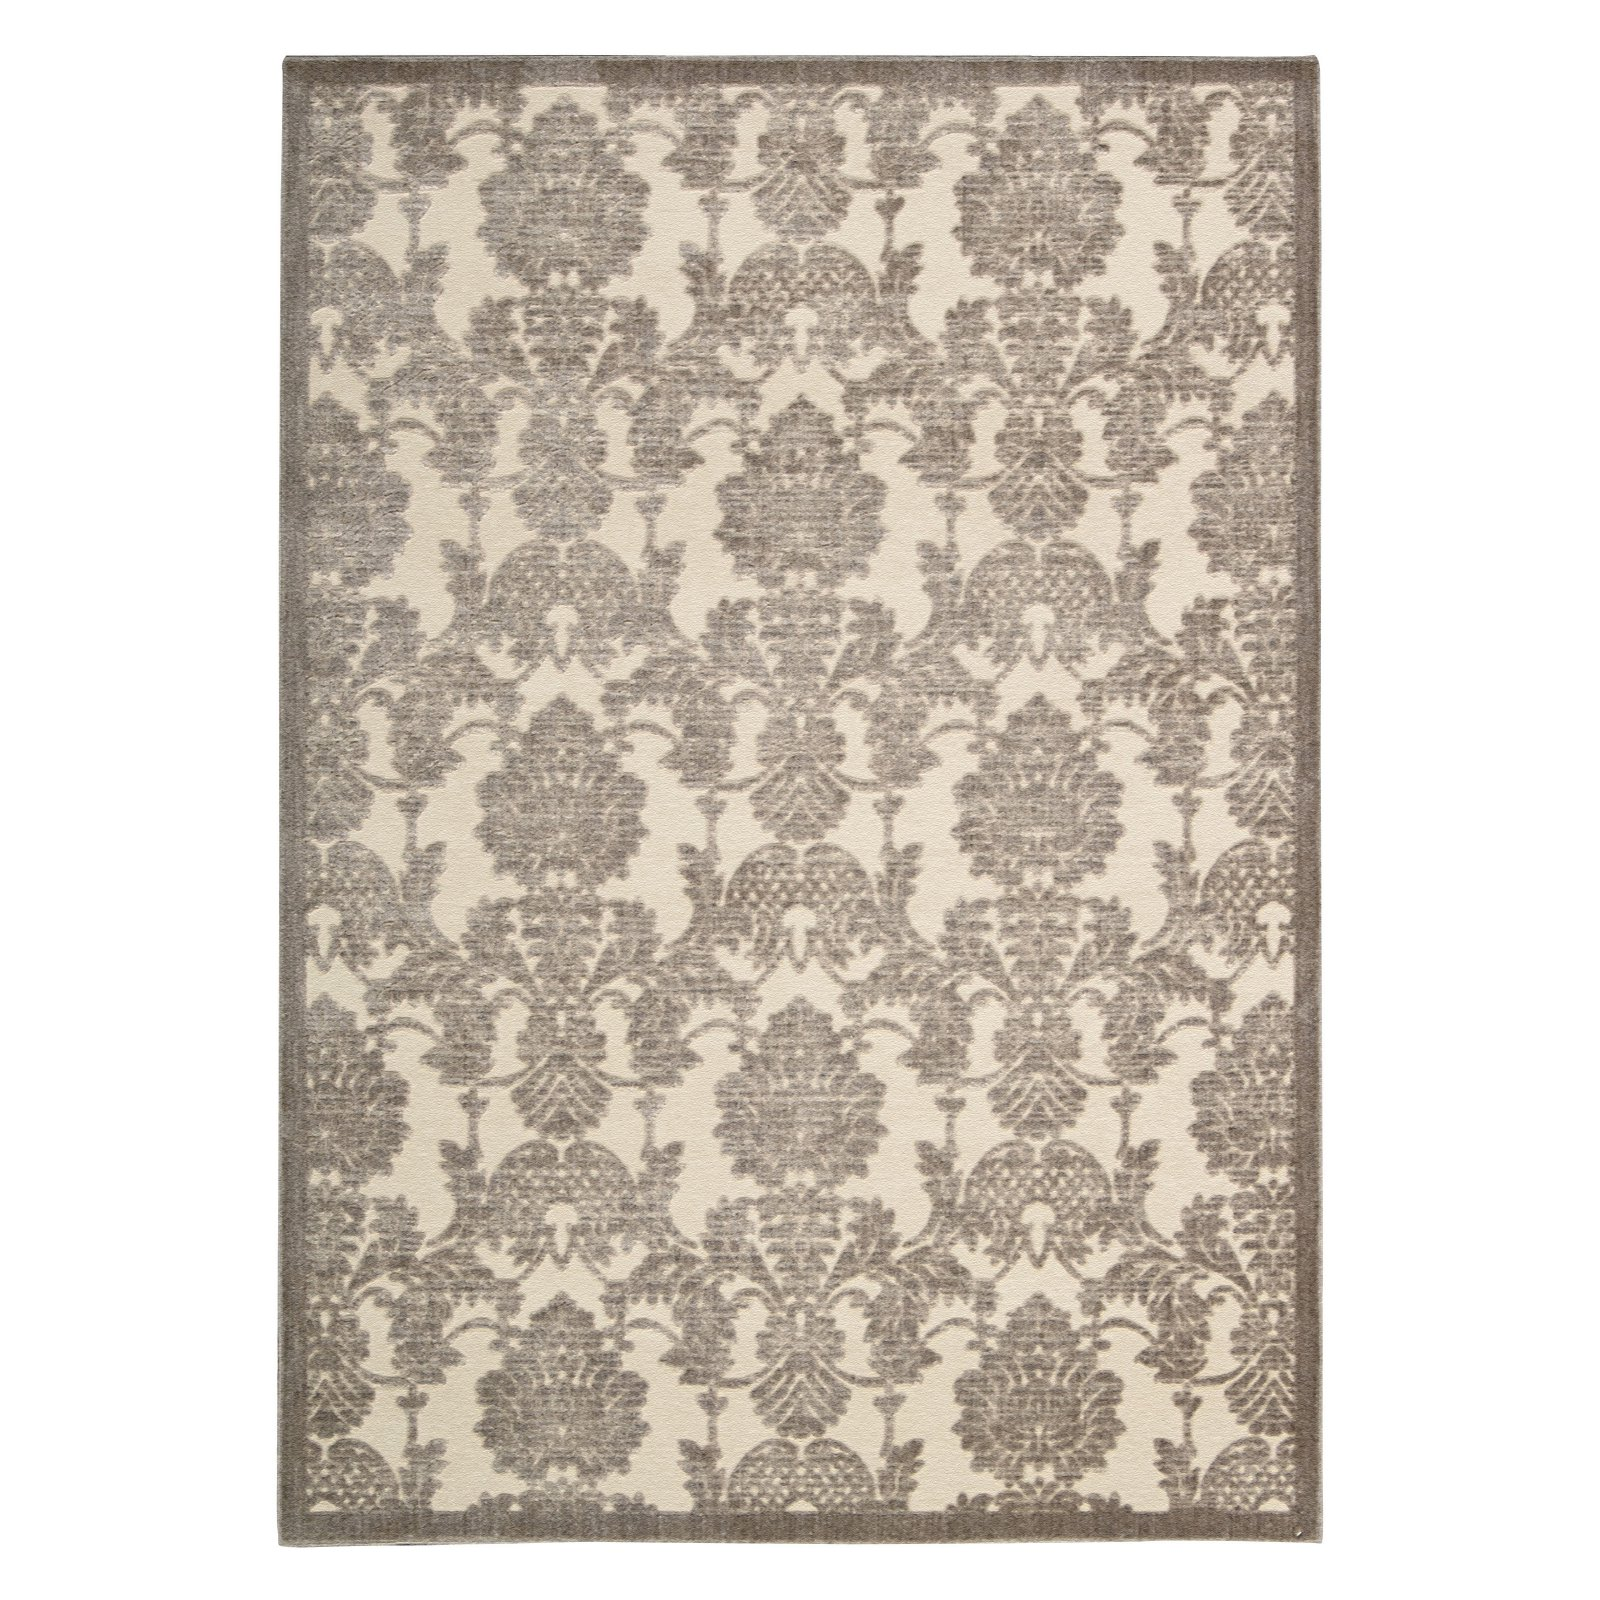 Nourison Graphic Illusions GIL03 Area Rug